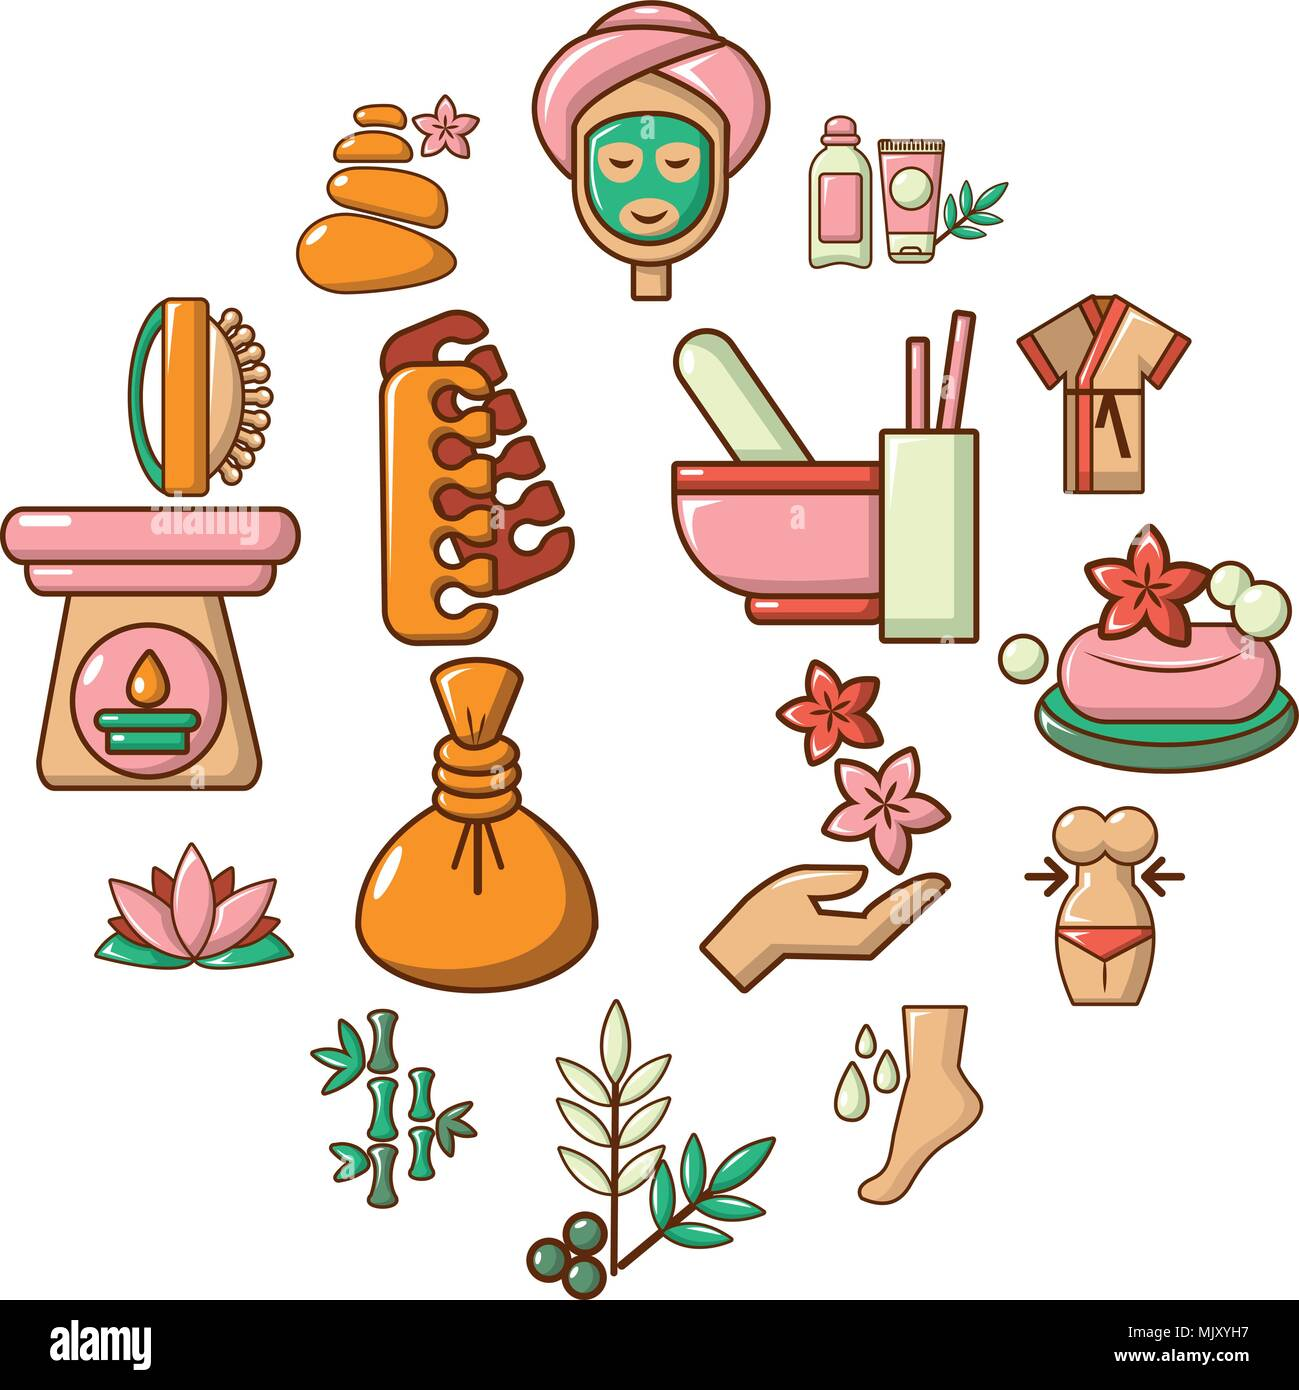 Beauty Salon Icons Set Cartoon High Resolution Stock Photography And Images Alamy